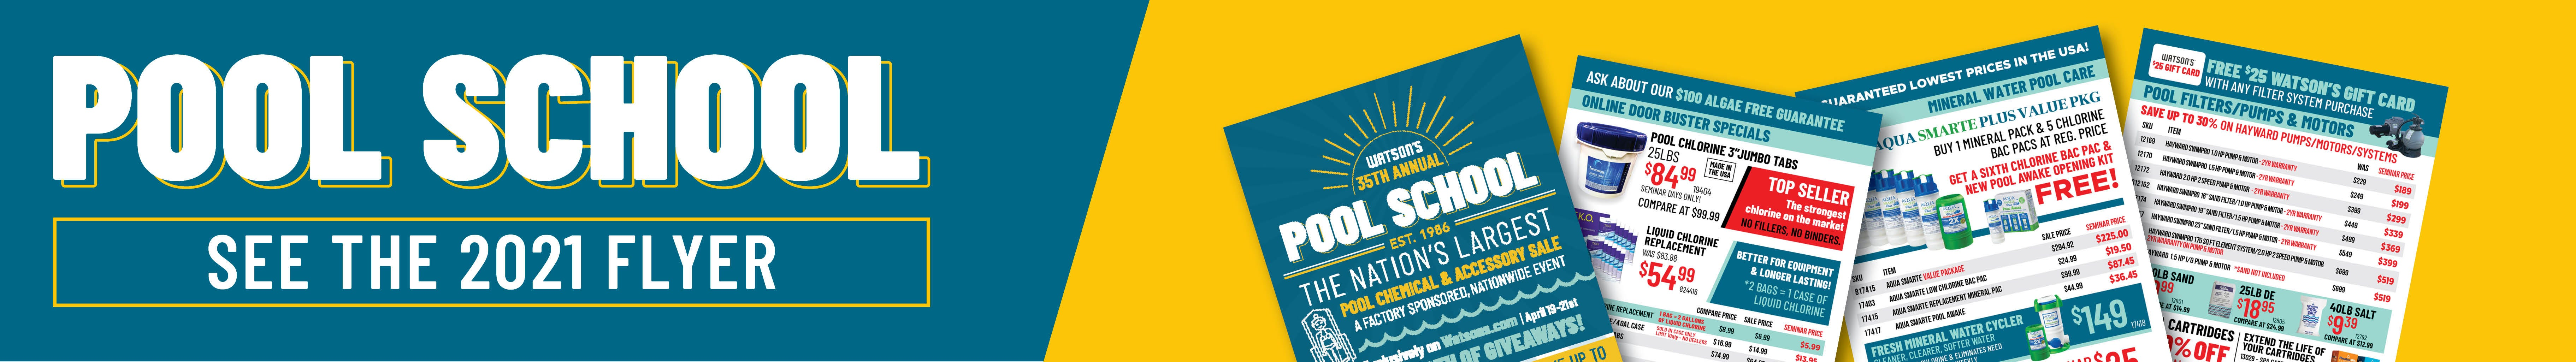 See the Watson's Pool School 2021 Flyer